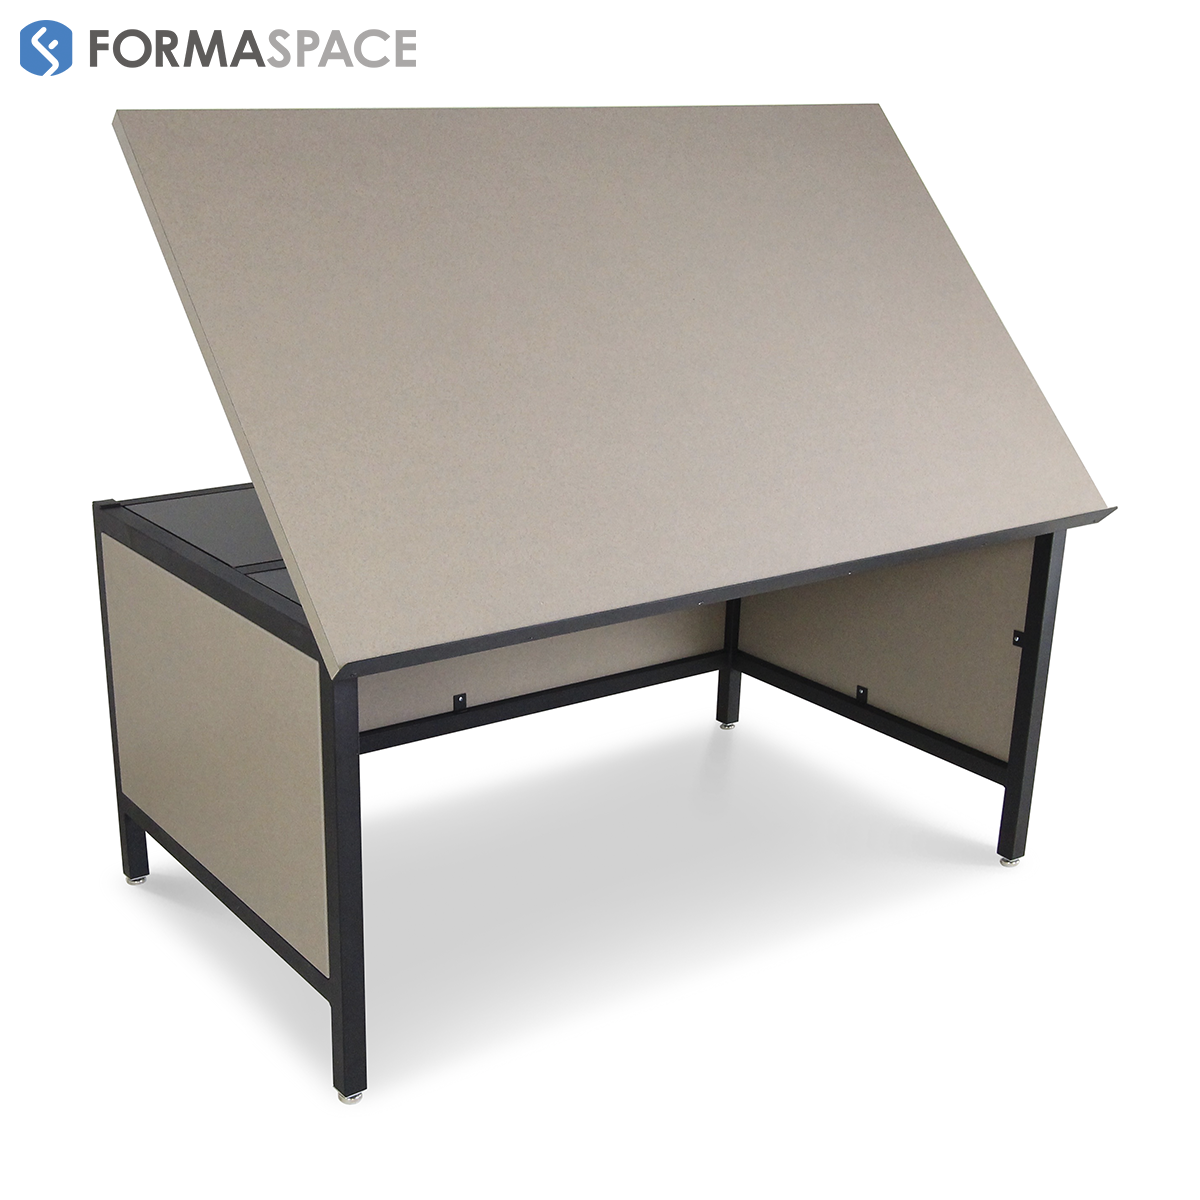 Drafting Table With Modesty Panels | FORMASPACE | These Large Drafting  Tables Are Designed For A